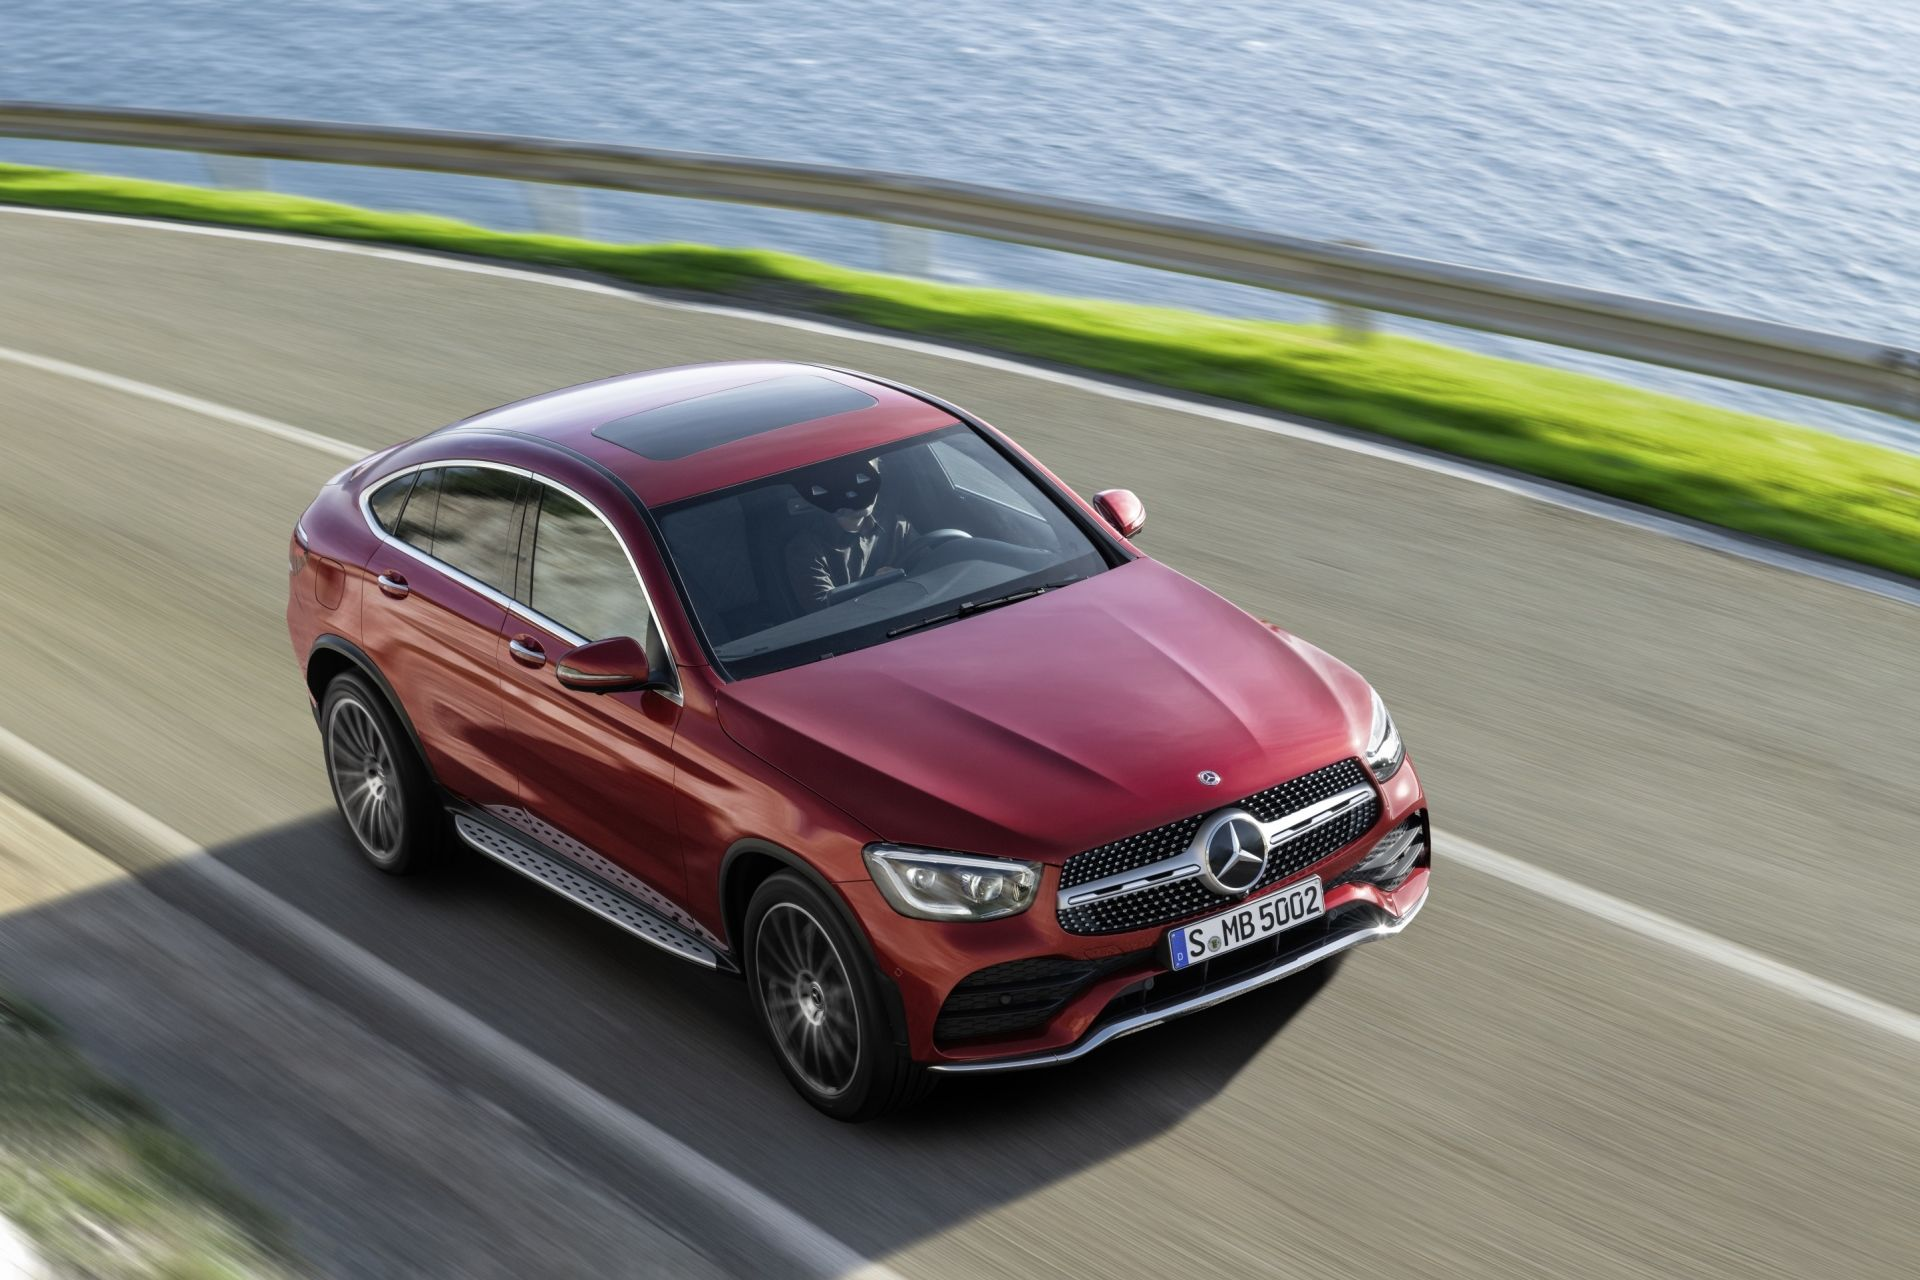 The Mercedes-Benz GLC Coupé Gets A Fresh Look And A New Line-Up Of Engines